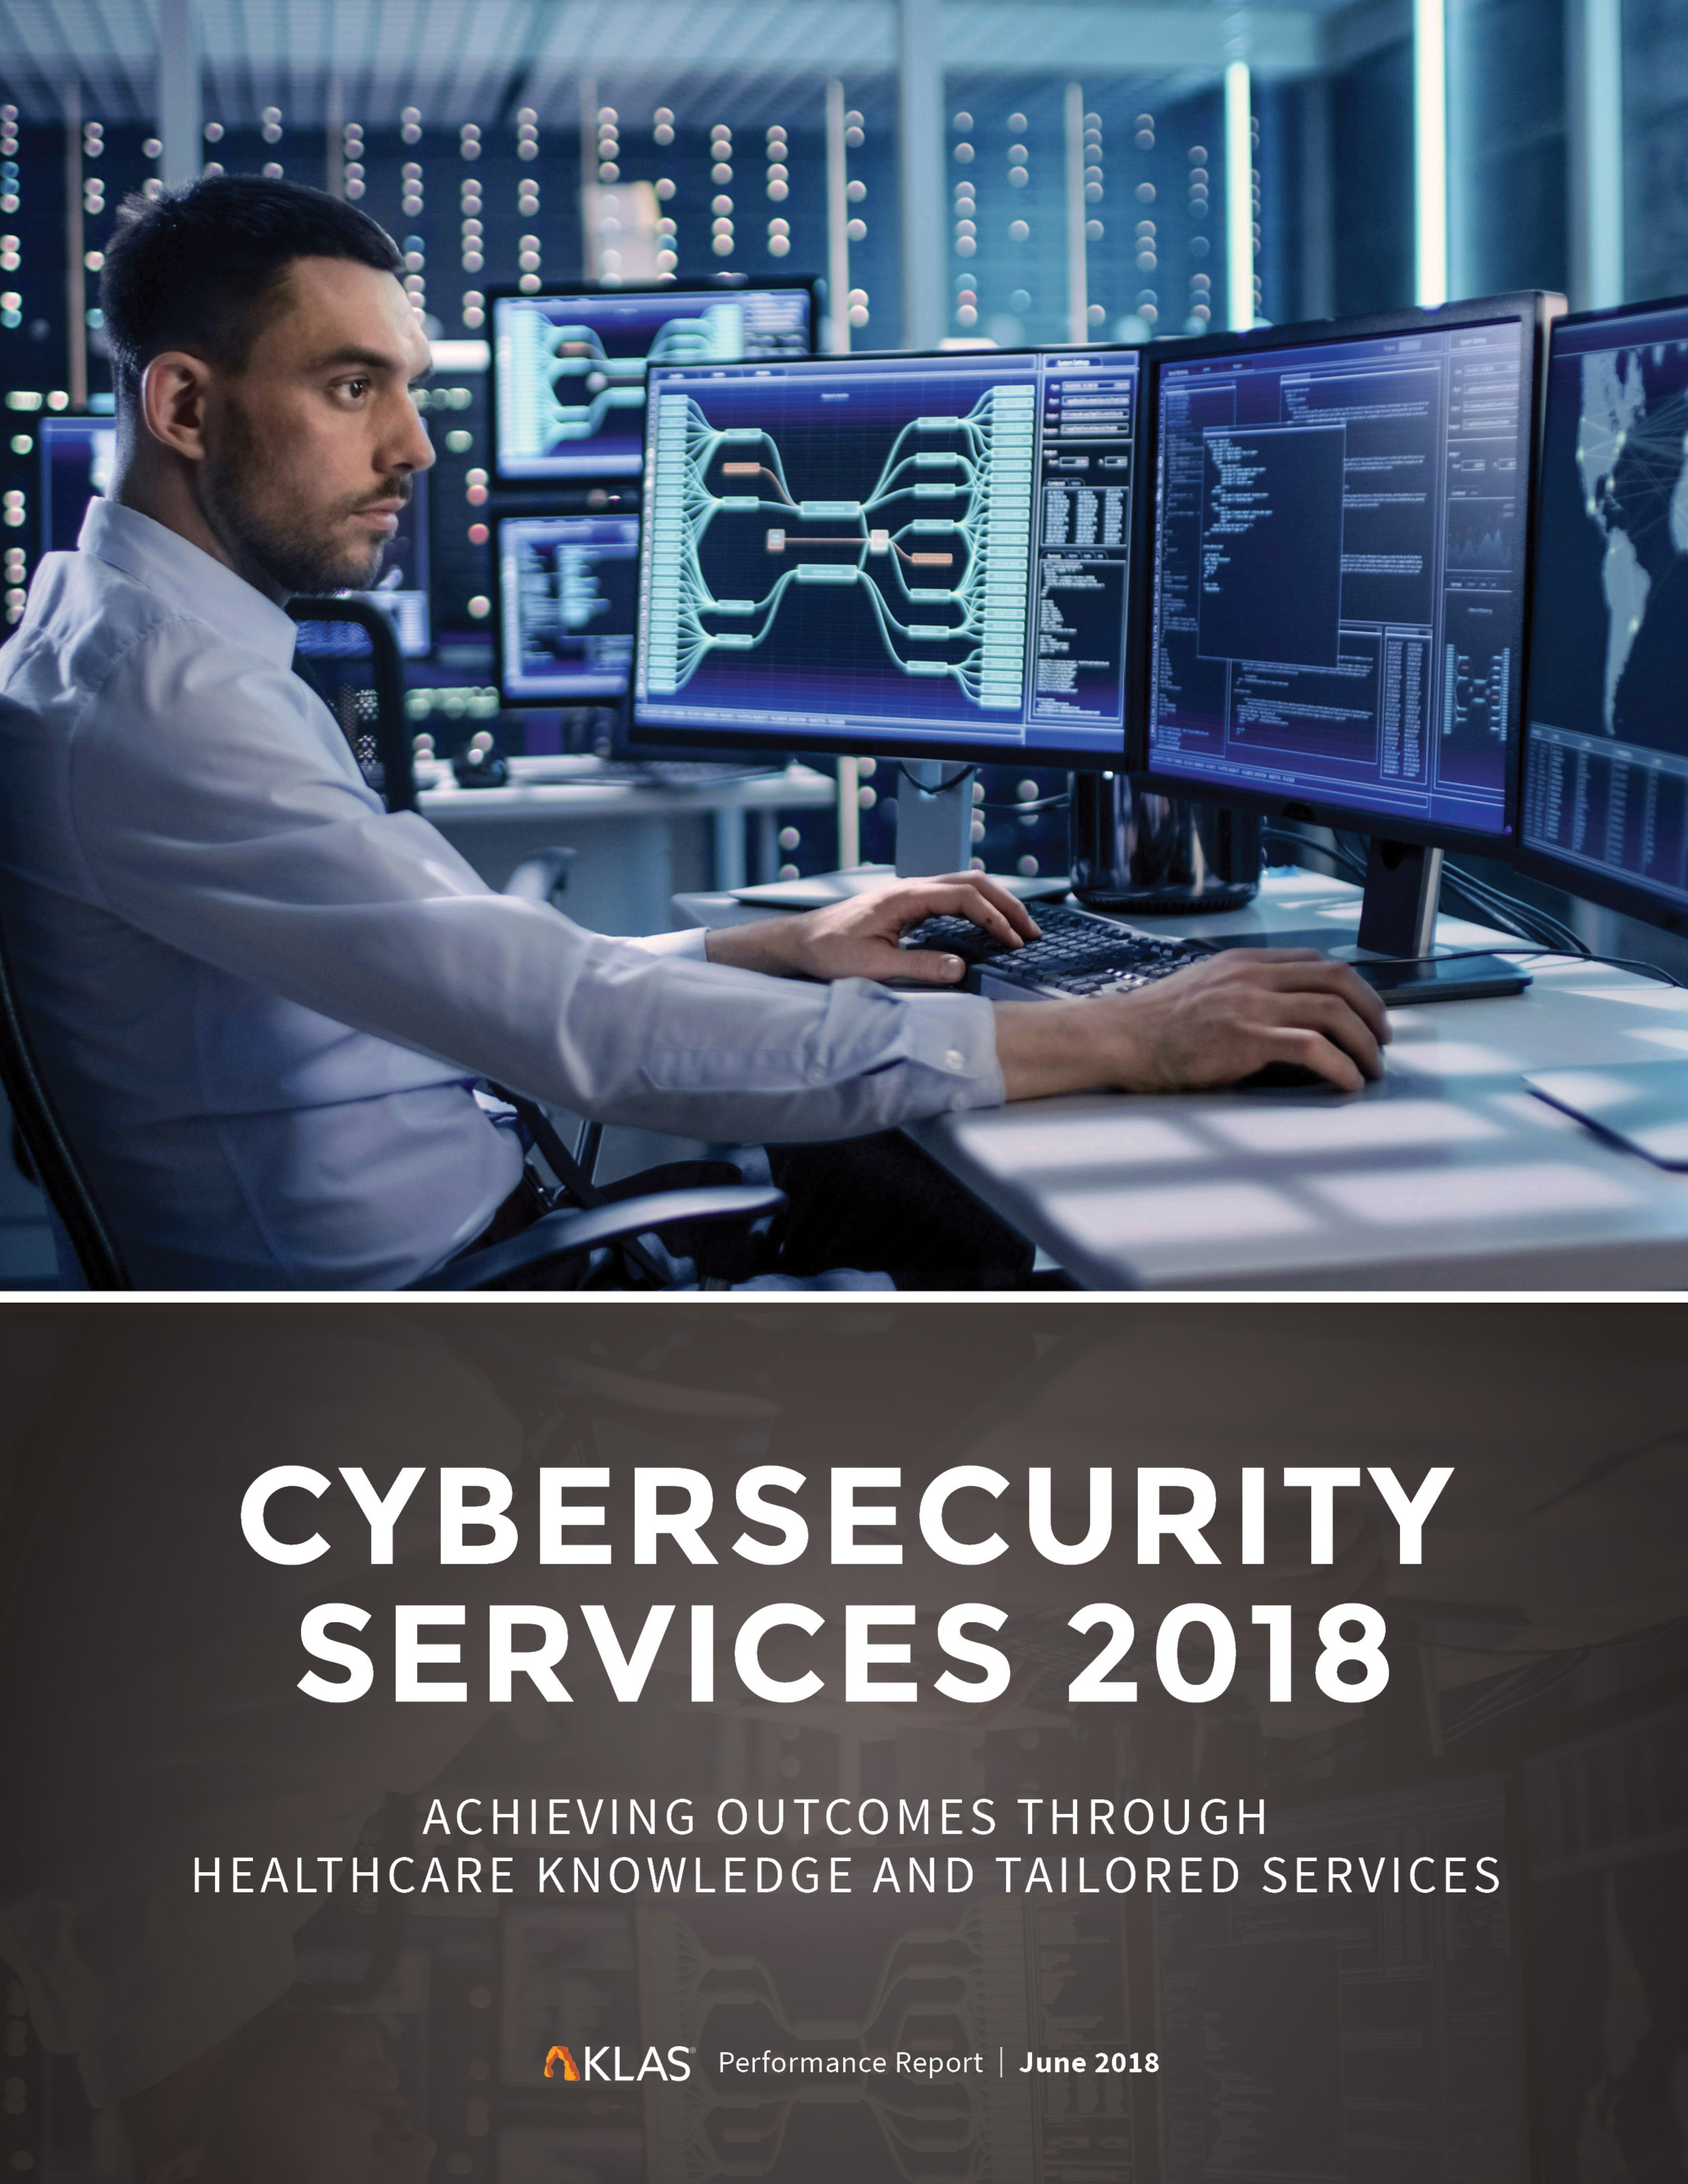 Cybersecurity Services 2018